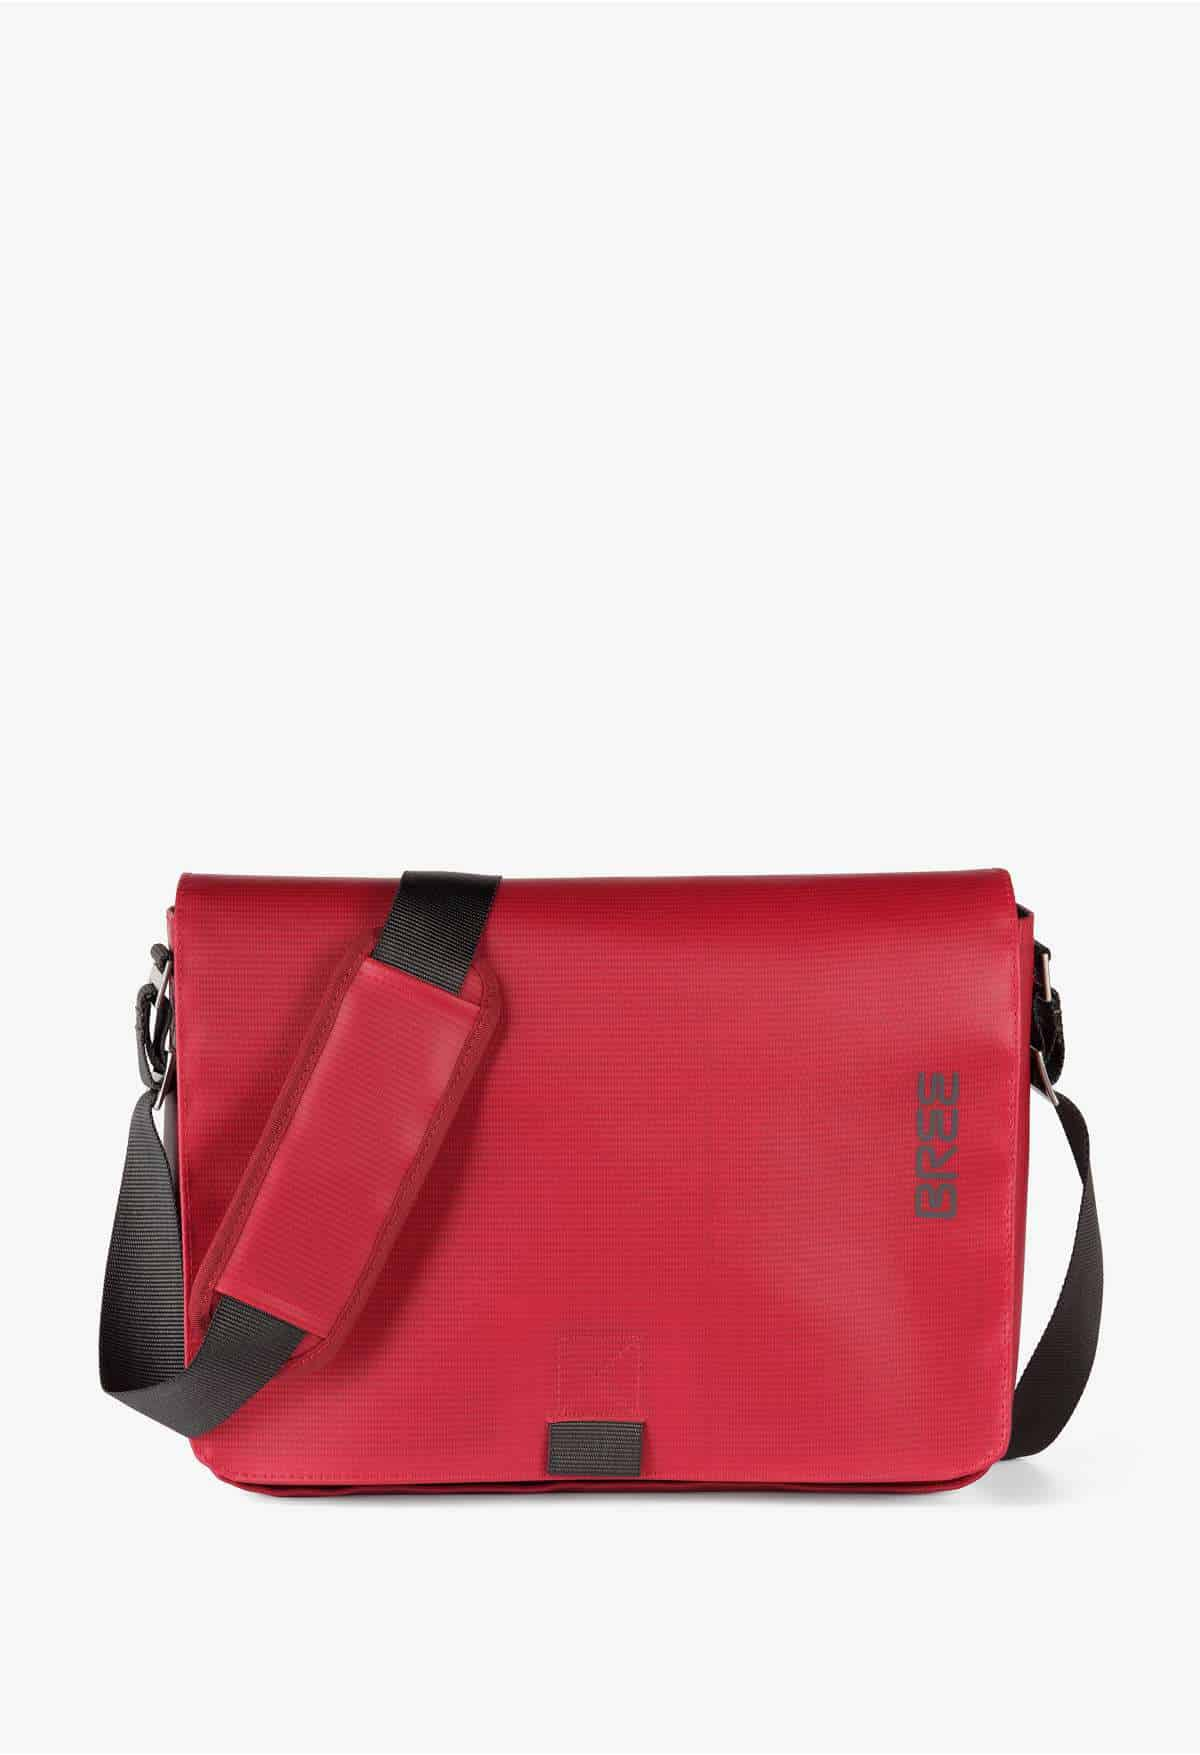 BREE-Punch-62-Messenger-Tasche-red-rot